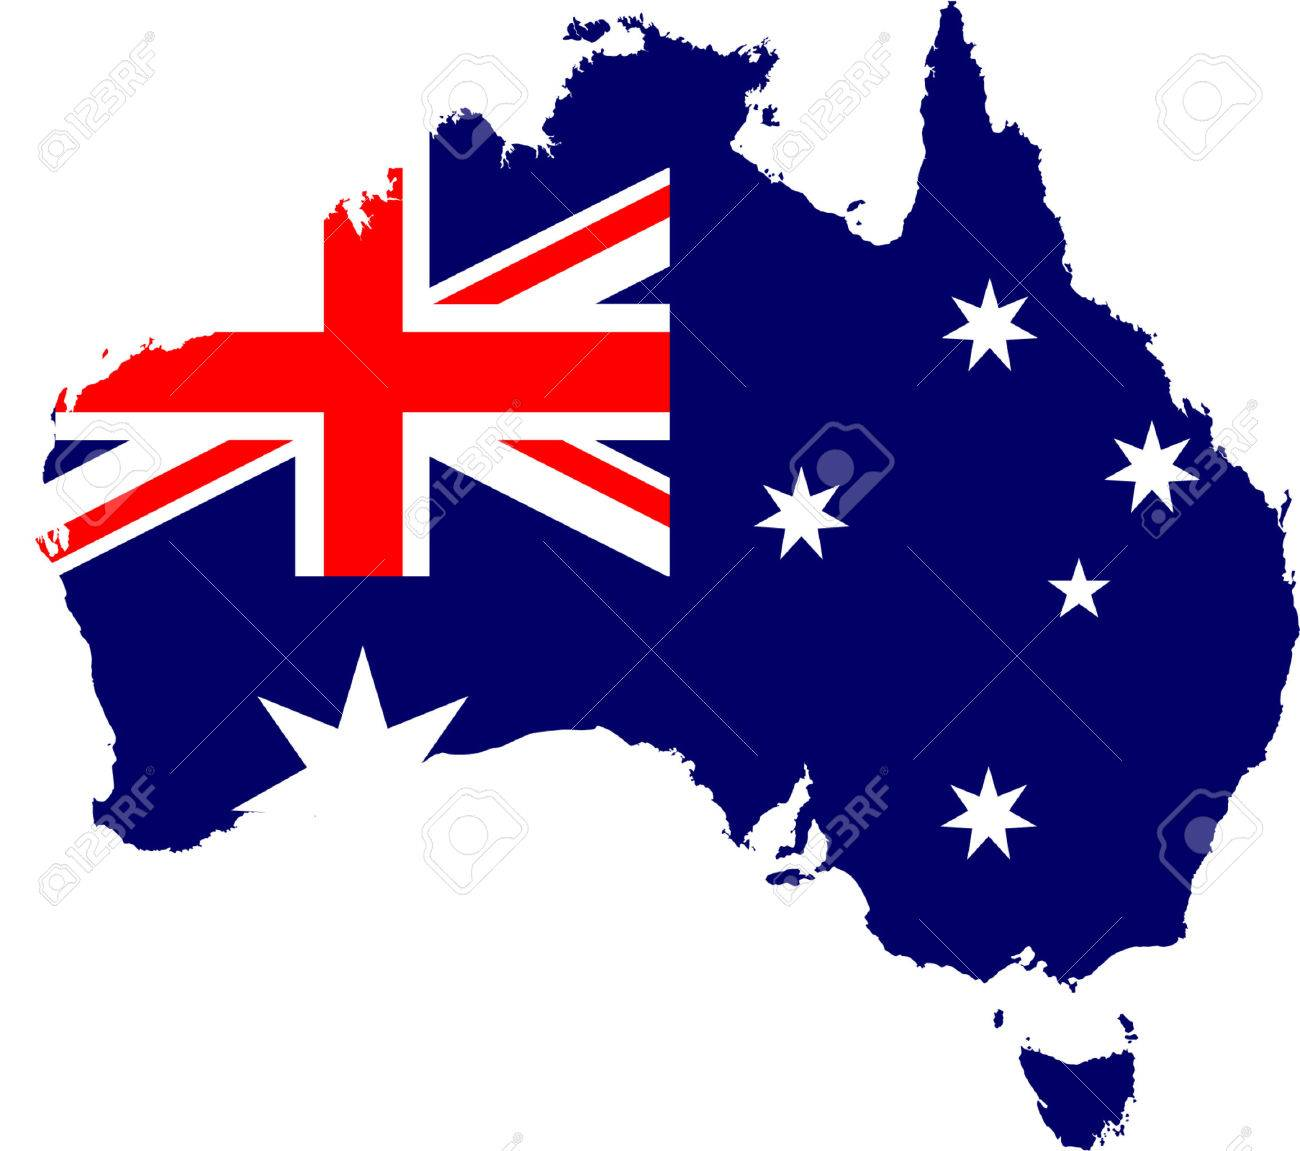 Australia Map With Flag.Australia Map And Flag Isolated Vector In Official Colors